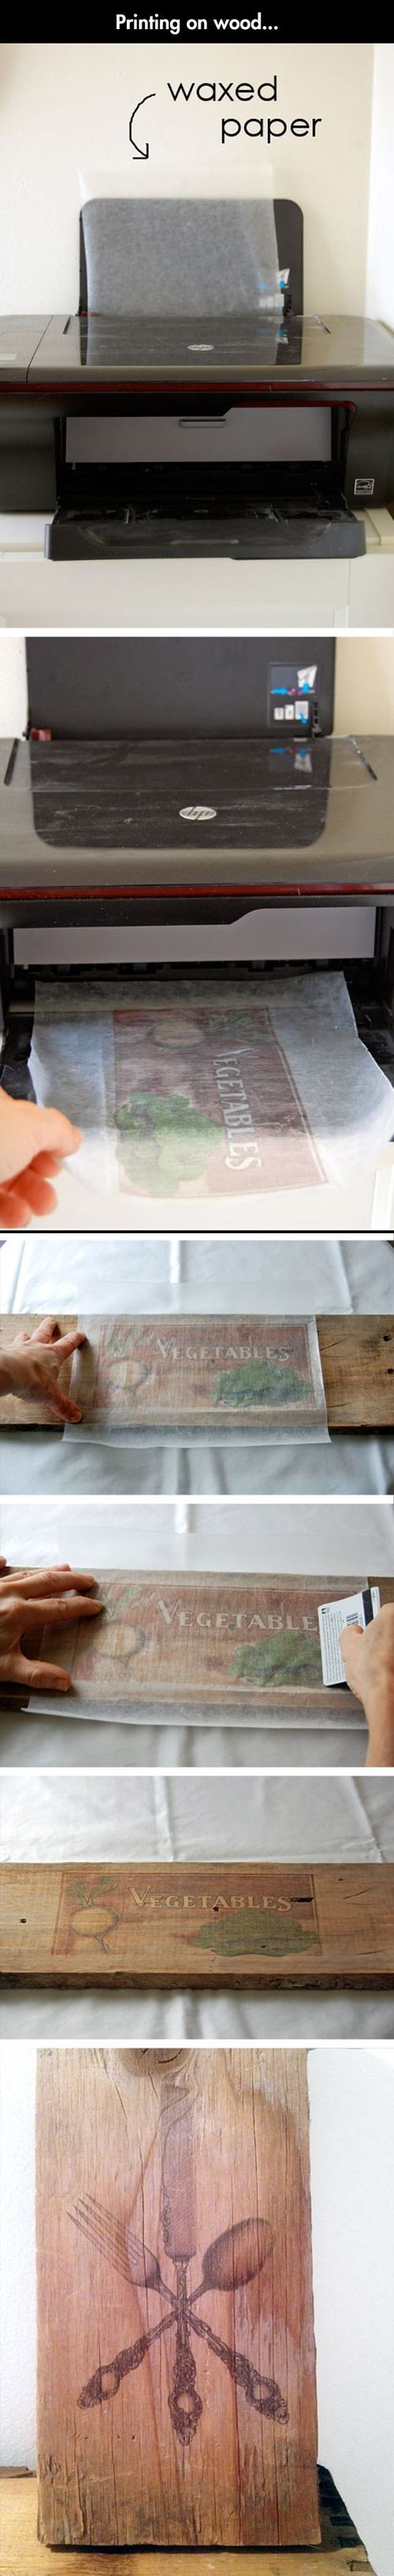 image transfer by printing on wax paper . brilliant!